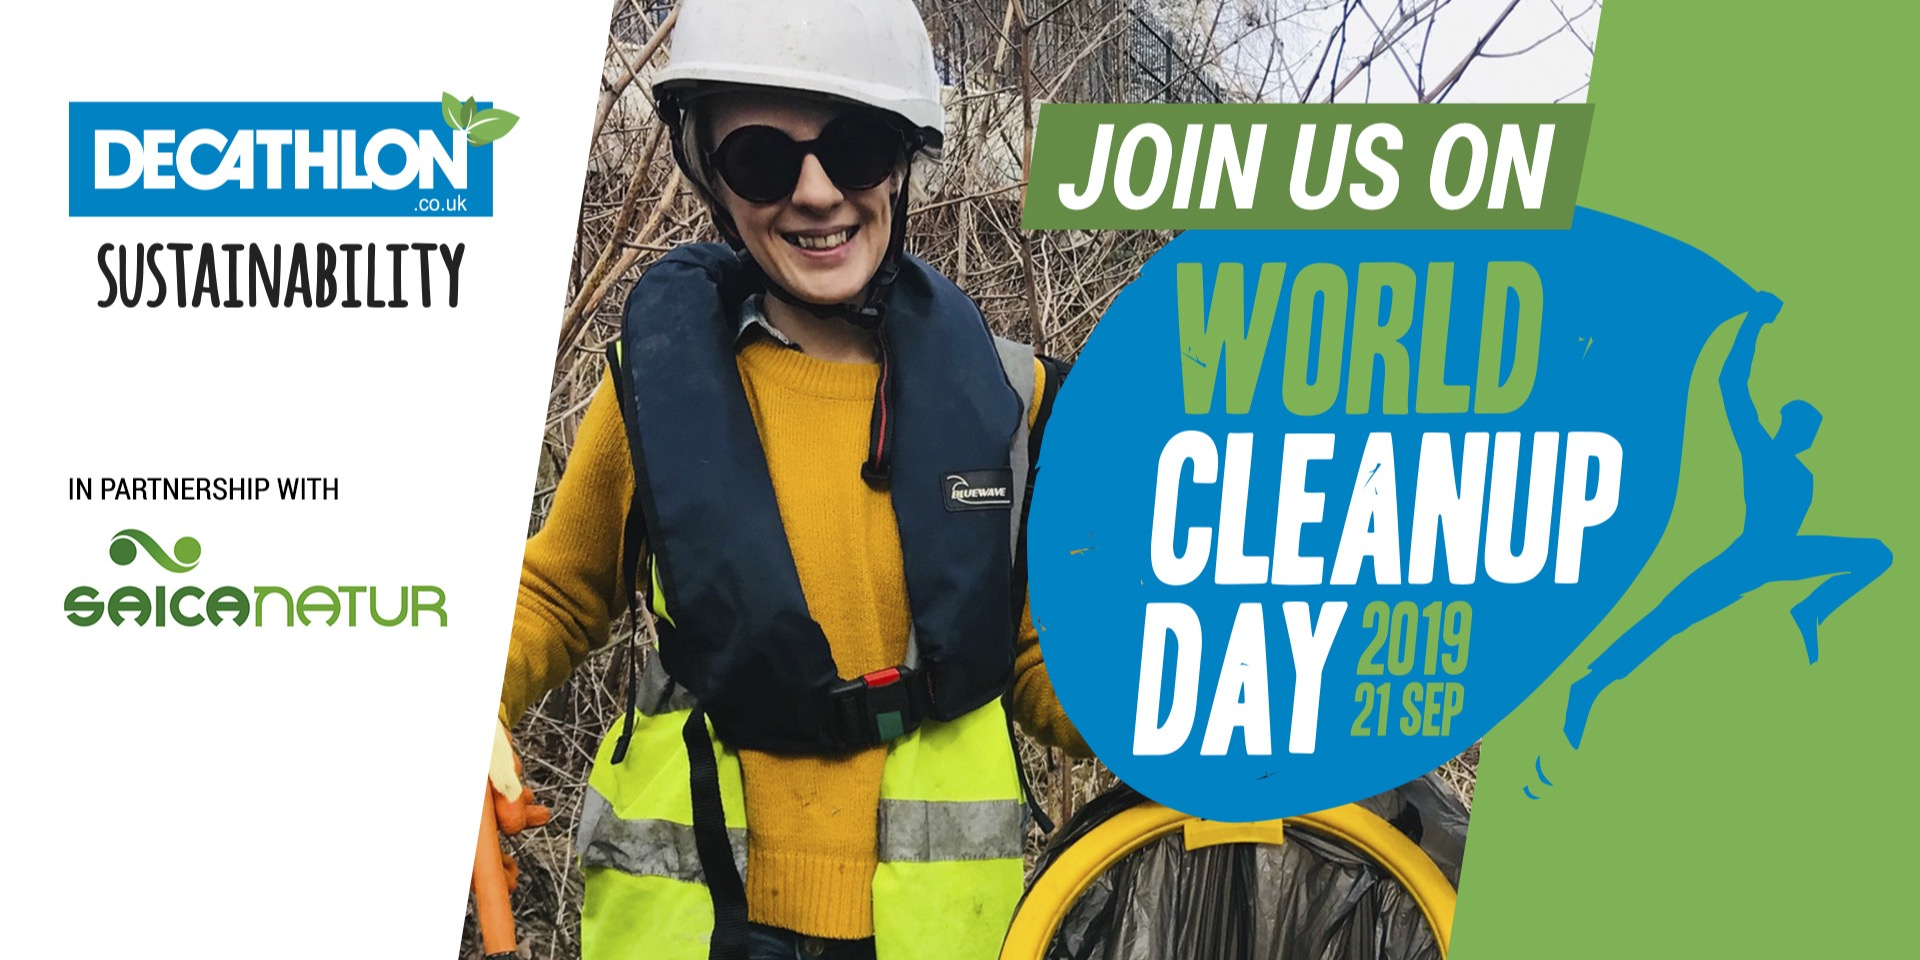 World Clean up day - chingford